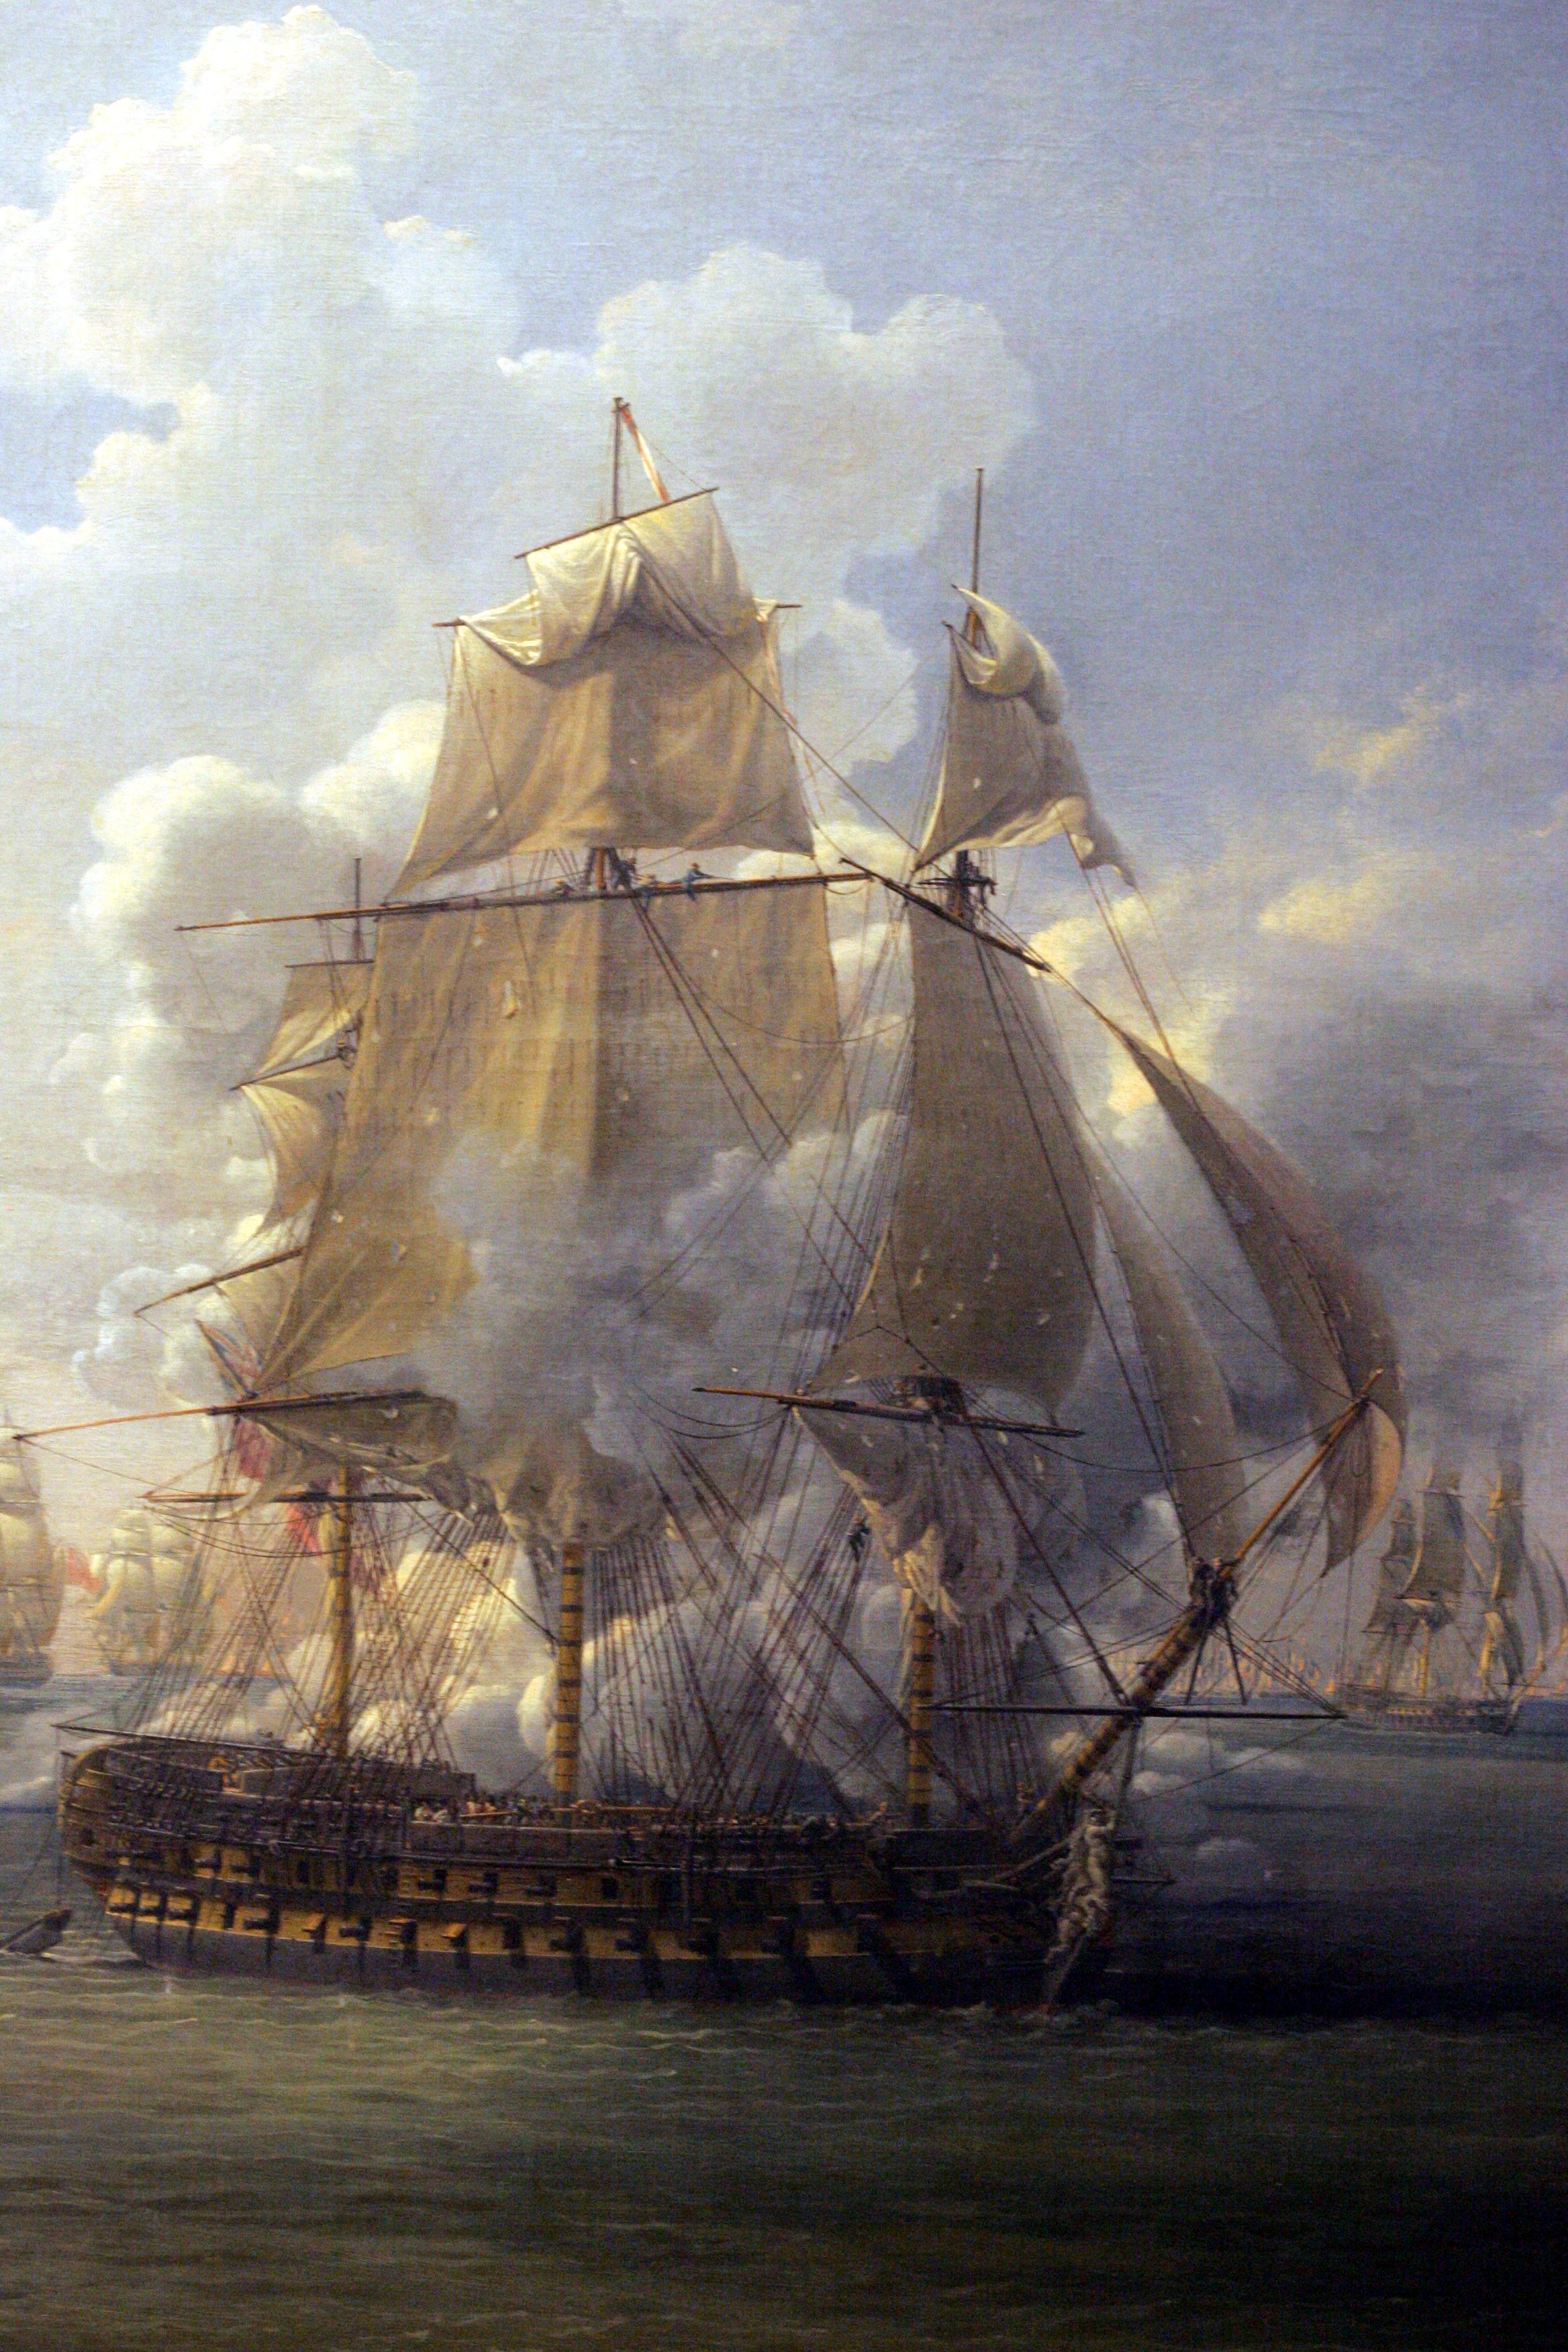 Hms Victory Is A 104 Gun First Rate Ship Of The Line Of